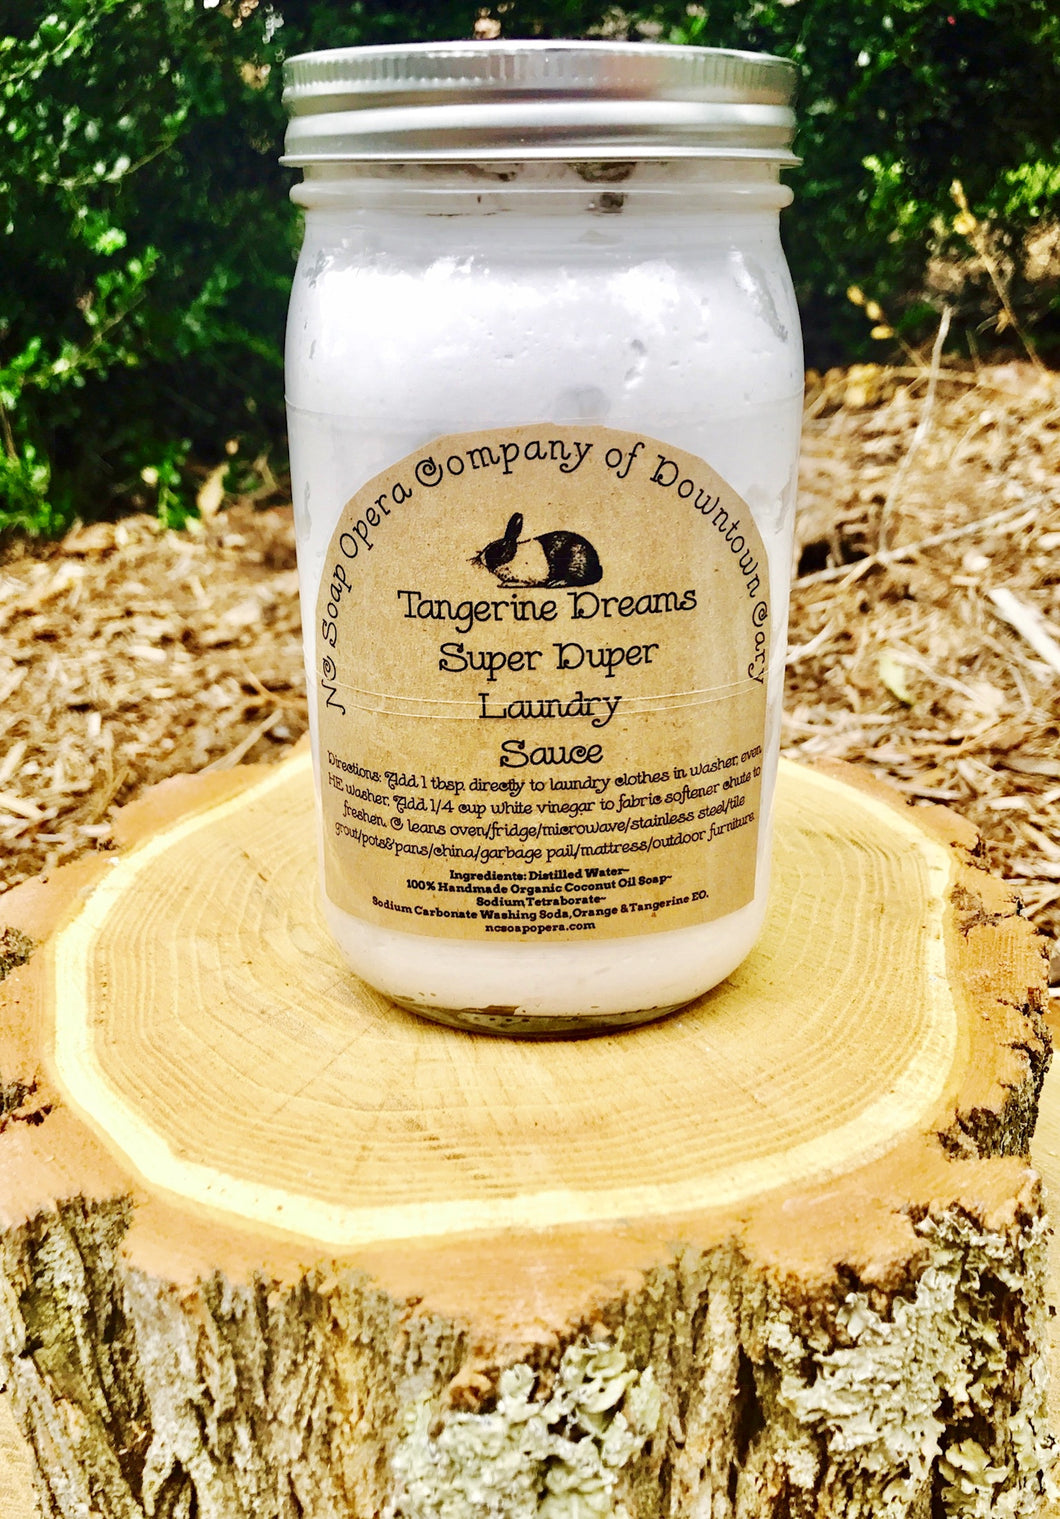 Handcrafted Laundry and Cleaning Sauce-